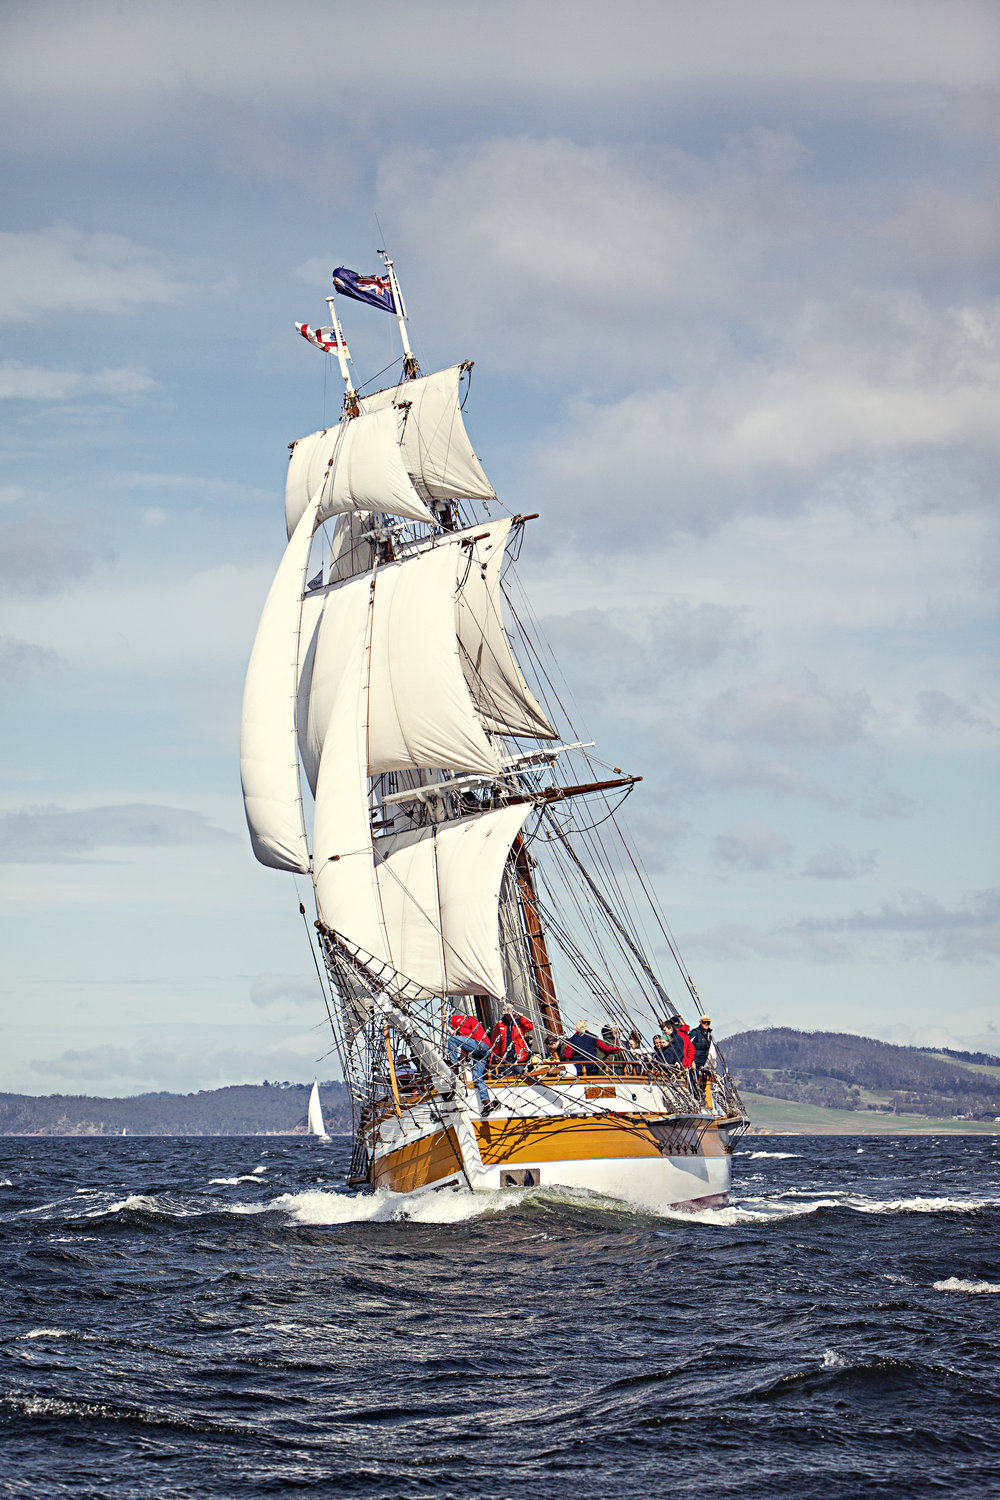 Take a passage back in time - Sail to Metung and back aboard the beautiful tall ship Lady Nelson, enjoy a unique and unforgettable day on the pristine waters of the Gippsland Lakes. Bring a picnic lunch or eat at the pub or one of the many cafes. Friday 2nd March & Monday 5th MarchPaynesville to Metung and return departing 10:00am returning 3pmApprox: 5hrs stopping for an hour in Metung - $110